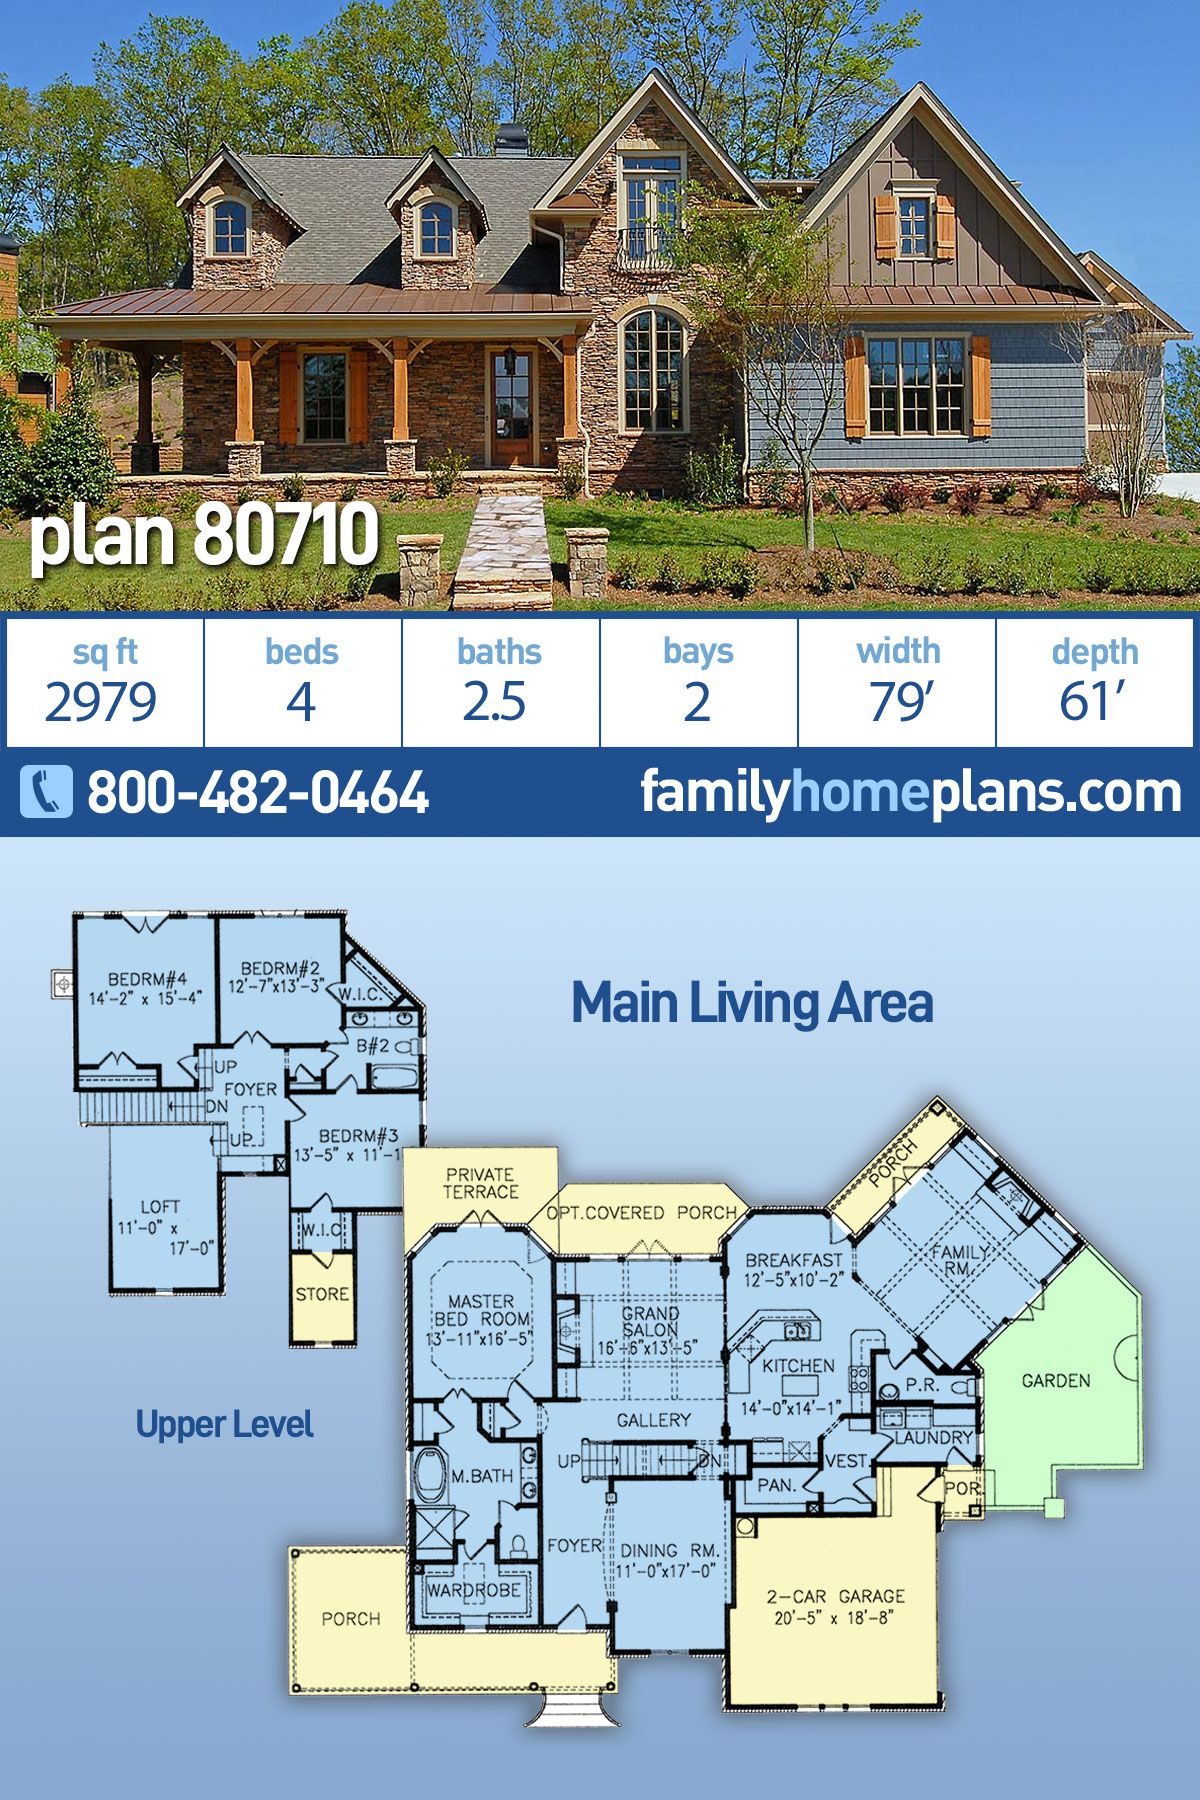 Southern Style House Plan 80710 With 4 Bed 3 Bath 2 Car Garage Family House Plans Farmhouse Plans House Plans Farmhouse